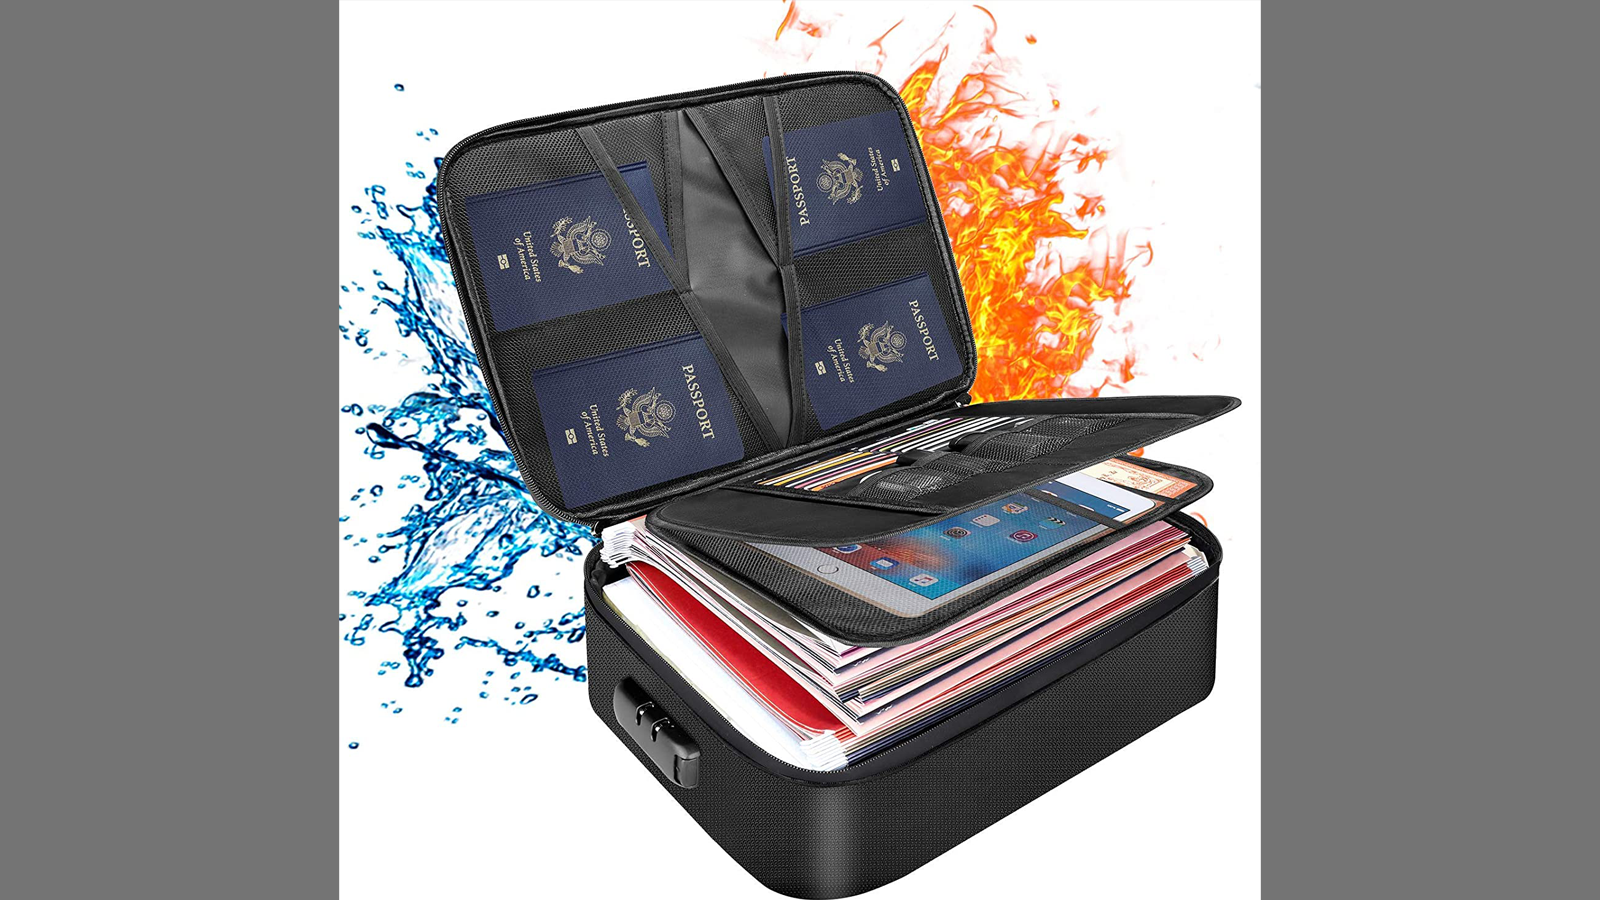 Protect Your Important Documents in This File Storage Case